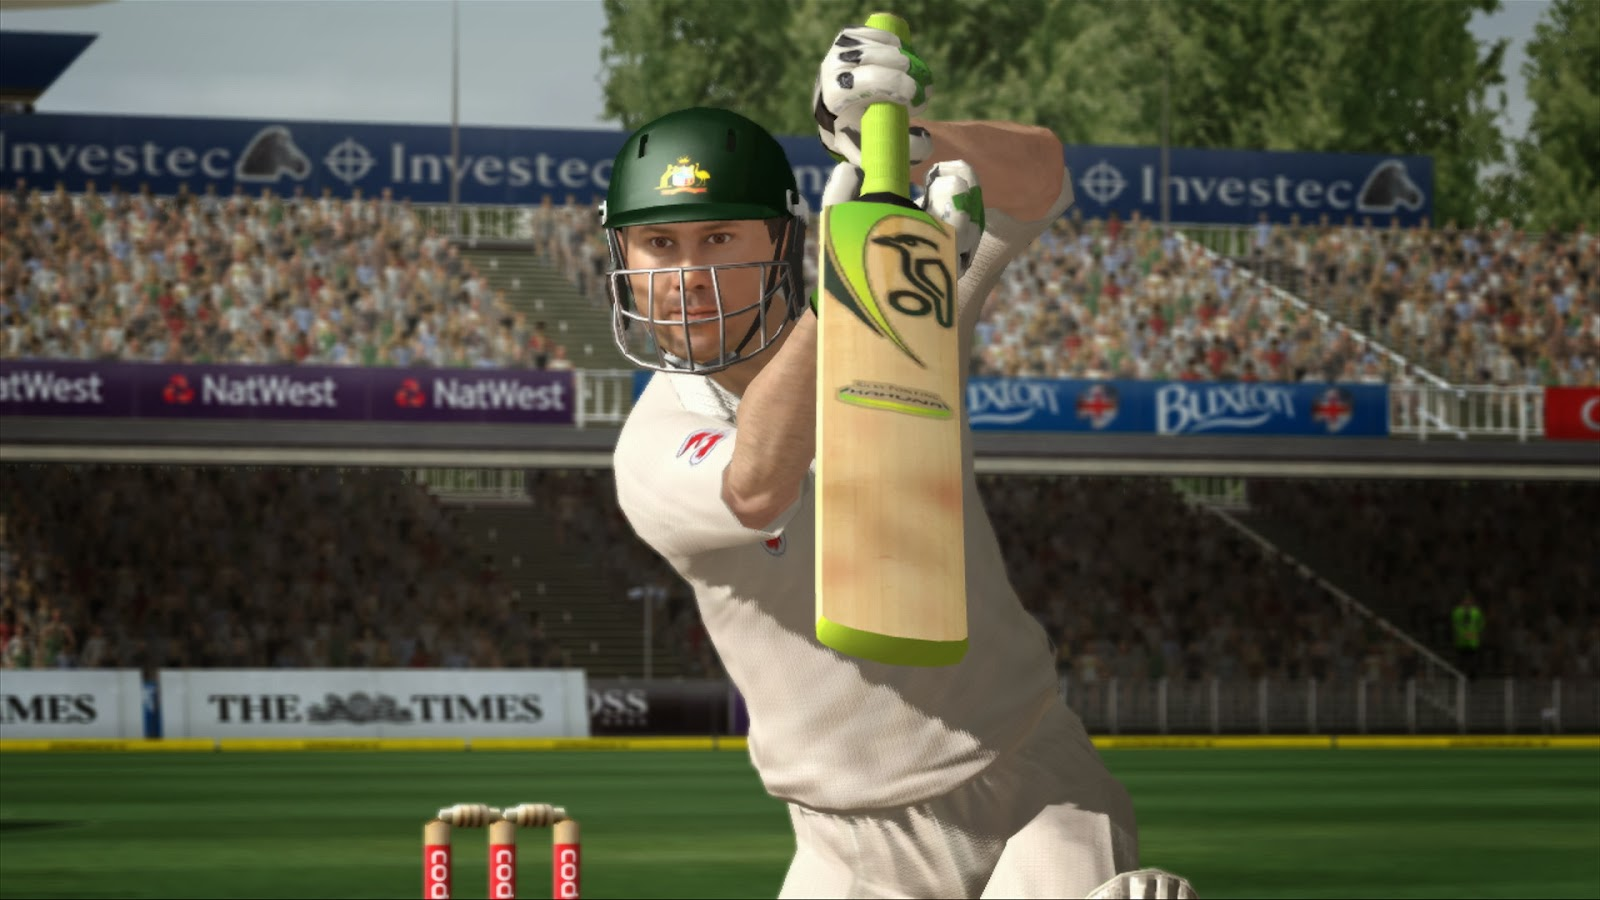 information about cricket game Find great buys on cell phones, plans, & service at cricket, where you get reliable nationwide coverage, affordable prepaid rates & no annual contract.